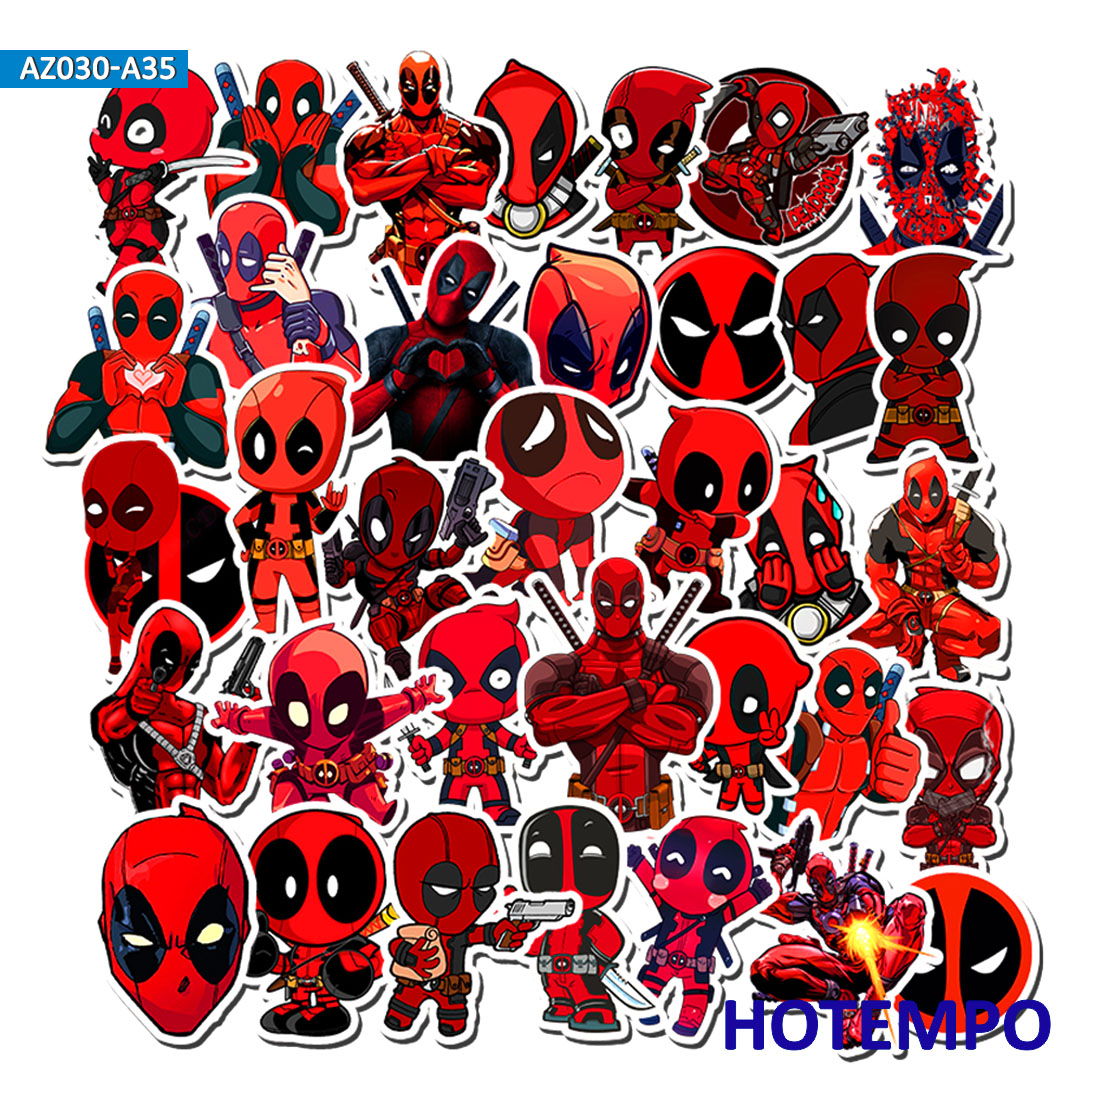 35pcs Marvel Deadpool Super Hero Stickers For Mobile Phone Laptop Luggage Suitcase Guitar Skateboard Bicycle Decal Stickers